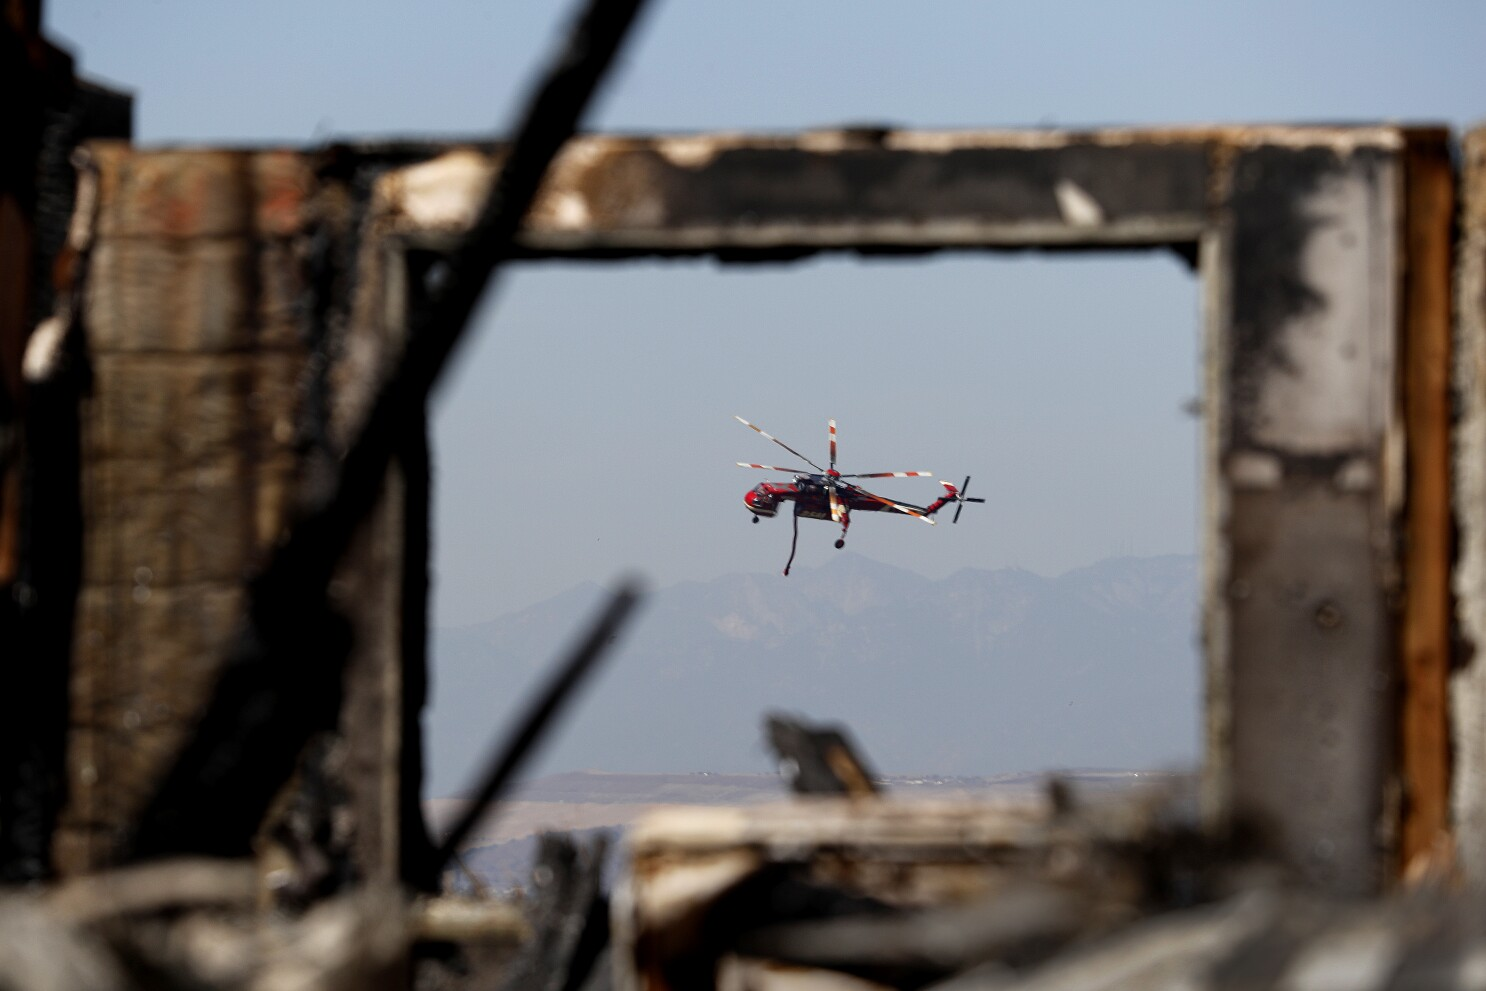 O.C. approves funds for aircraft to monitor wildfires' spread